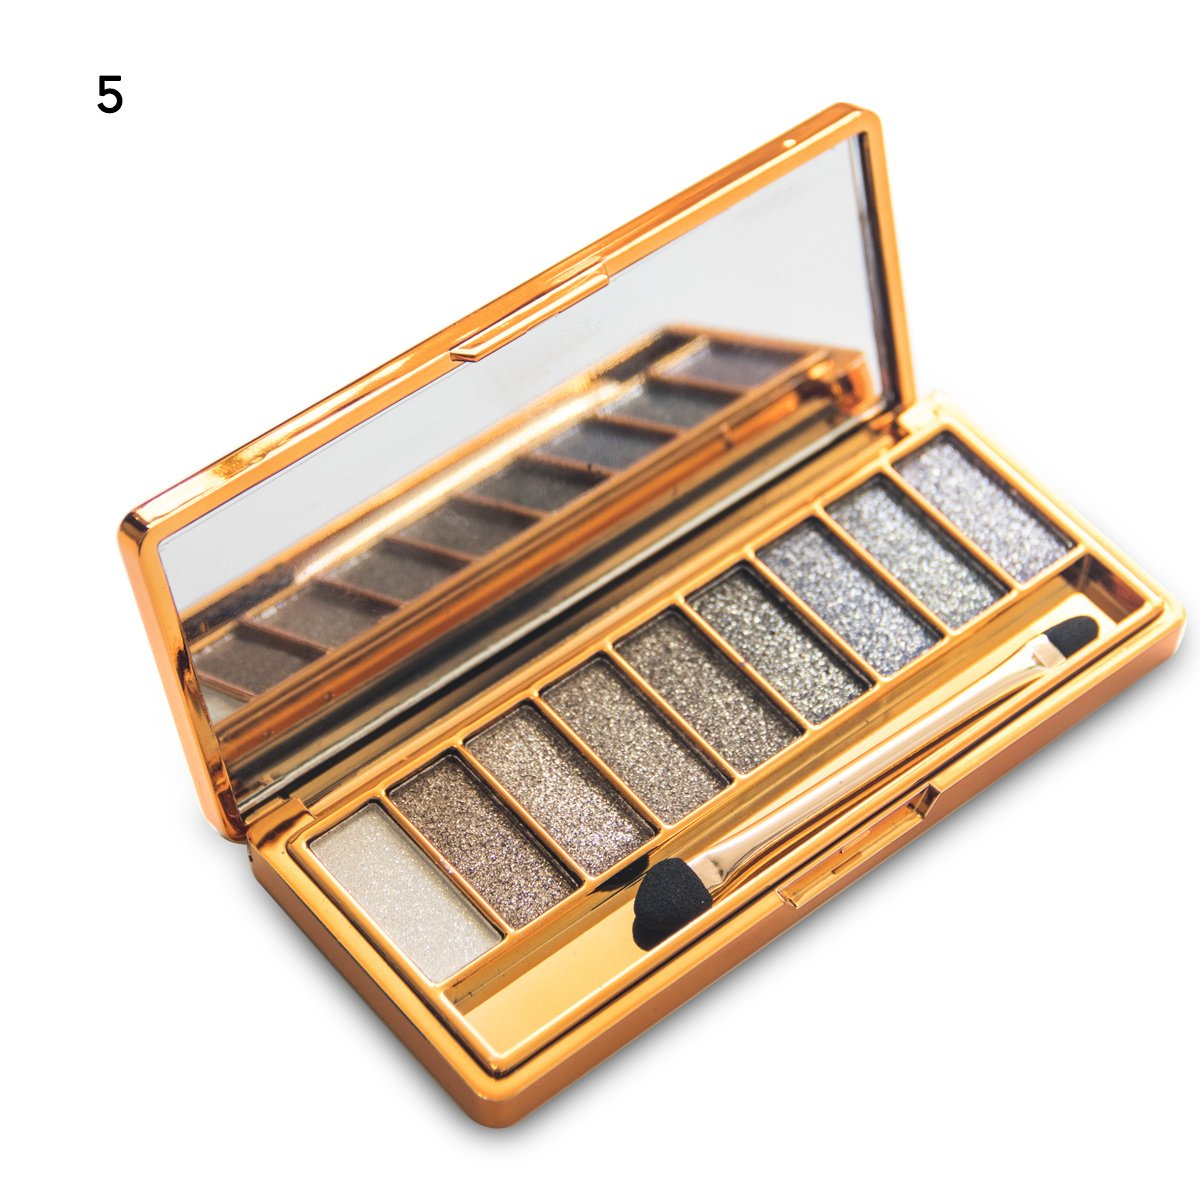 Sporthway Women 9 Colors Waterproof Make UP Glitter Eyeshadow Palette with Brush (Color 5)